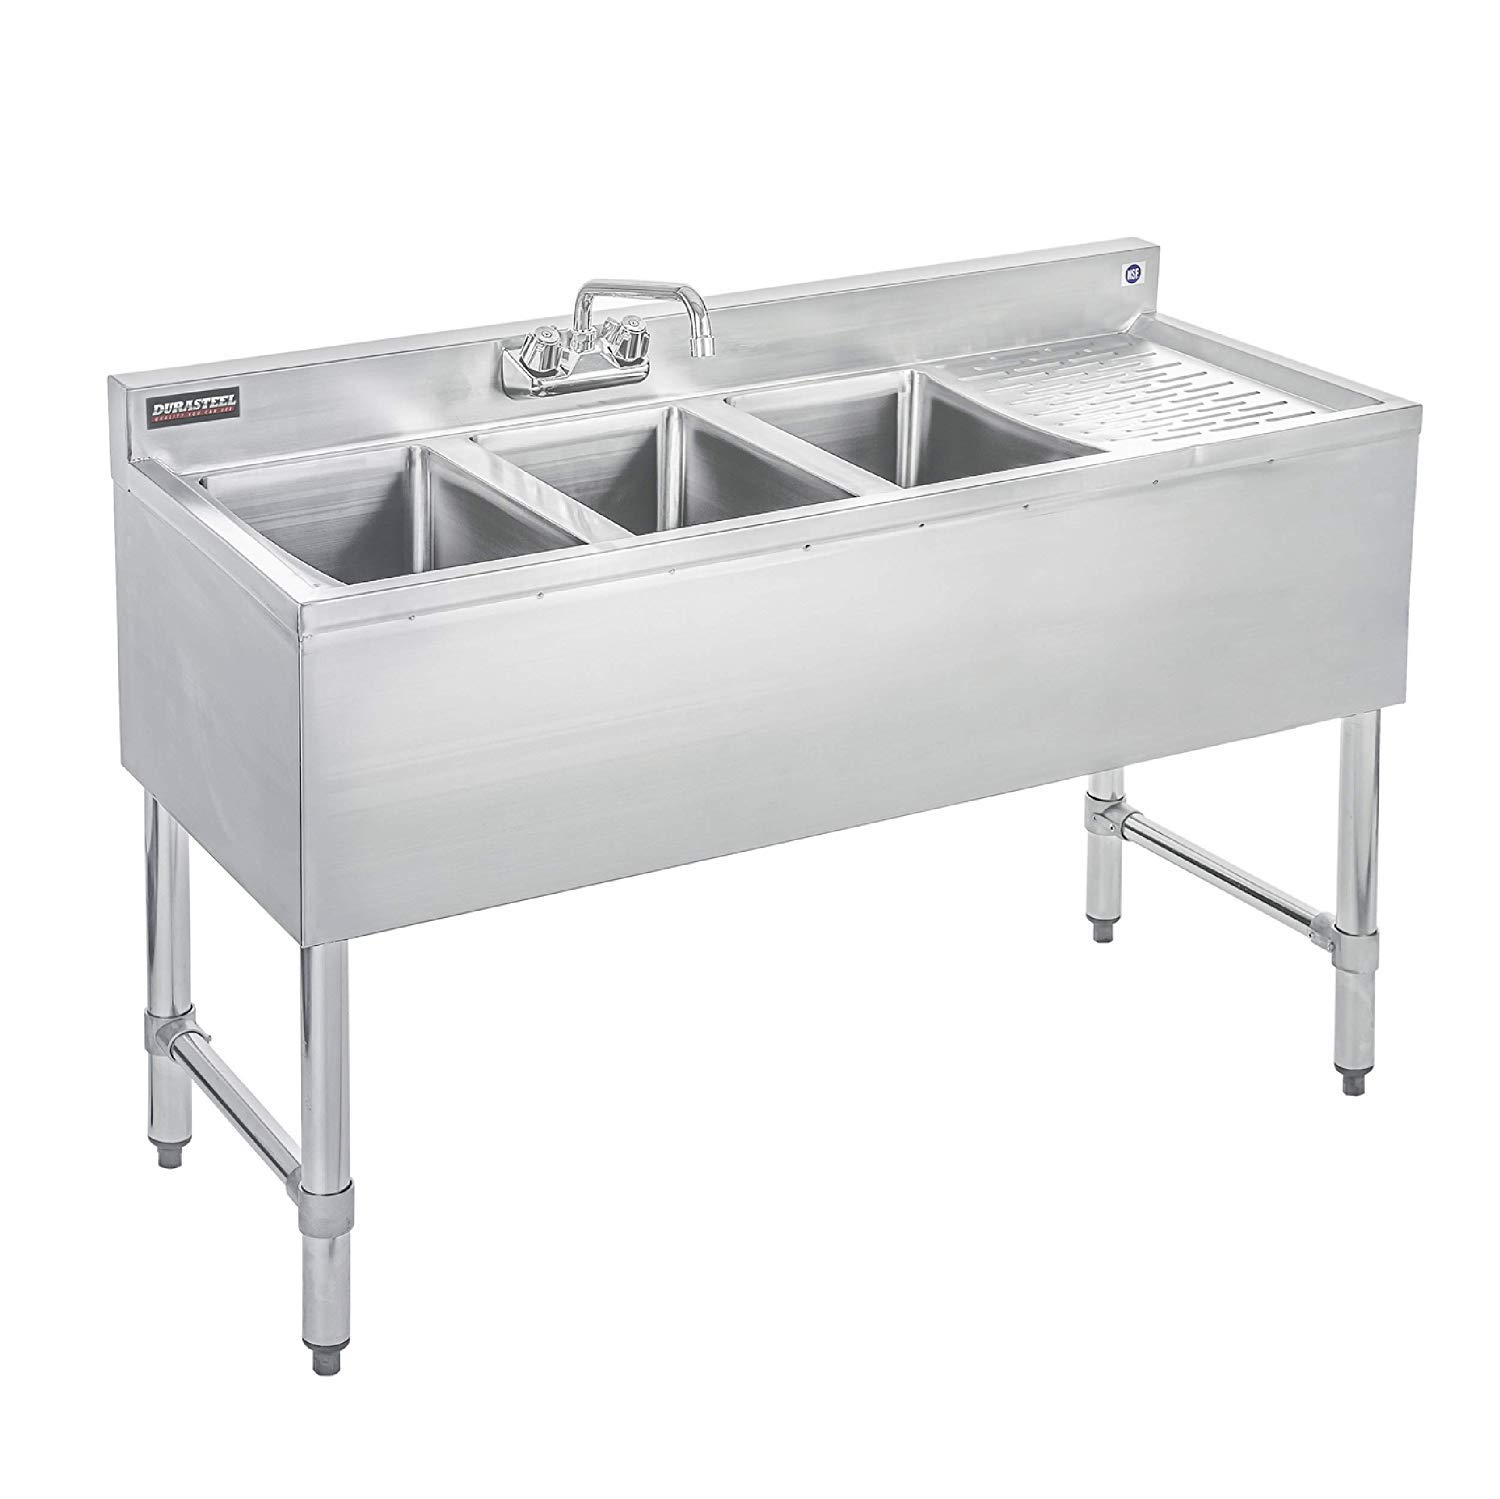 DuraSteel 3 Compartment Stainless Steel Bar Sink with 10'' L x 14'' W x 10'' D Bowl - Underbar Basin - NSF Certified - Right Drainboard, Faucet Included (Restaurant, Kitchen, Hotel, Bar)